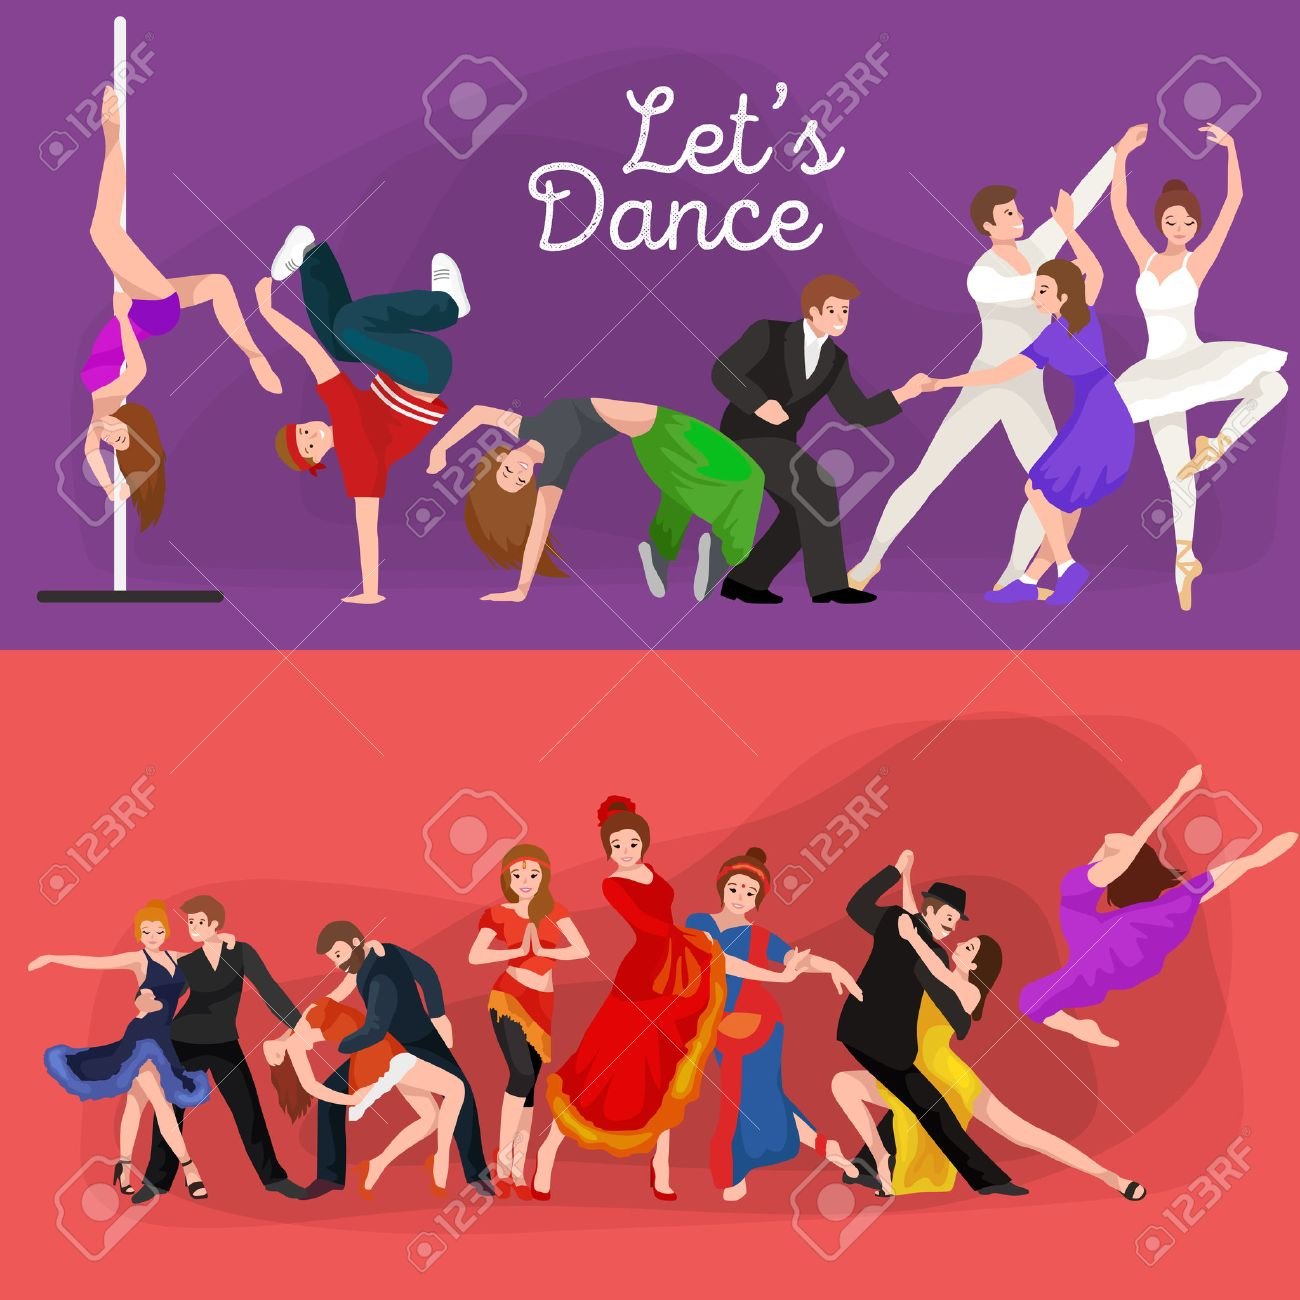 Dancing People, Dancer Bachata, Hiphop, Salsa, Indian, Ballet, Strip, Rock and Roll, Break, Flamenco, Tango, Contemporary, Belly Dance Pictogram Icon Dancing style of design concept set vector illustration set - 58648005